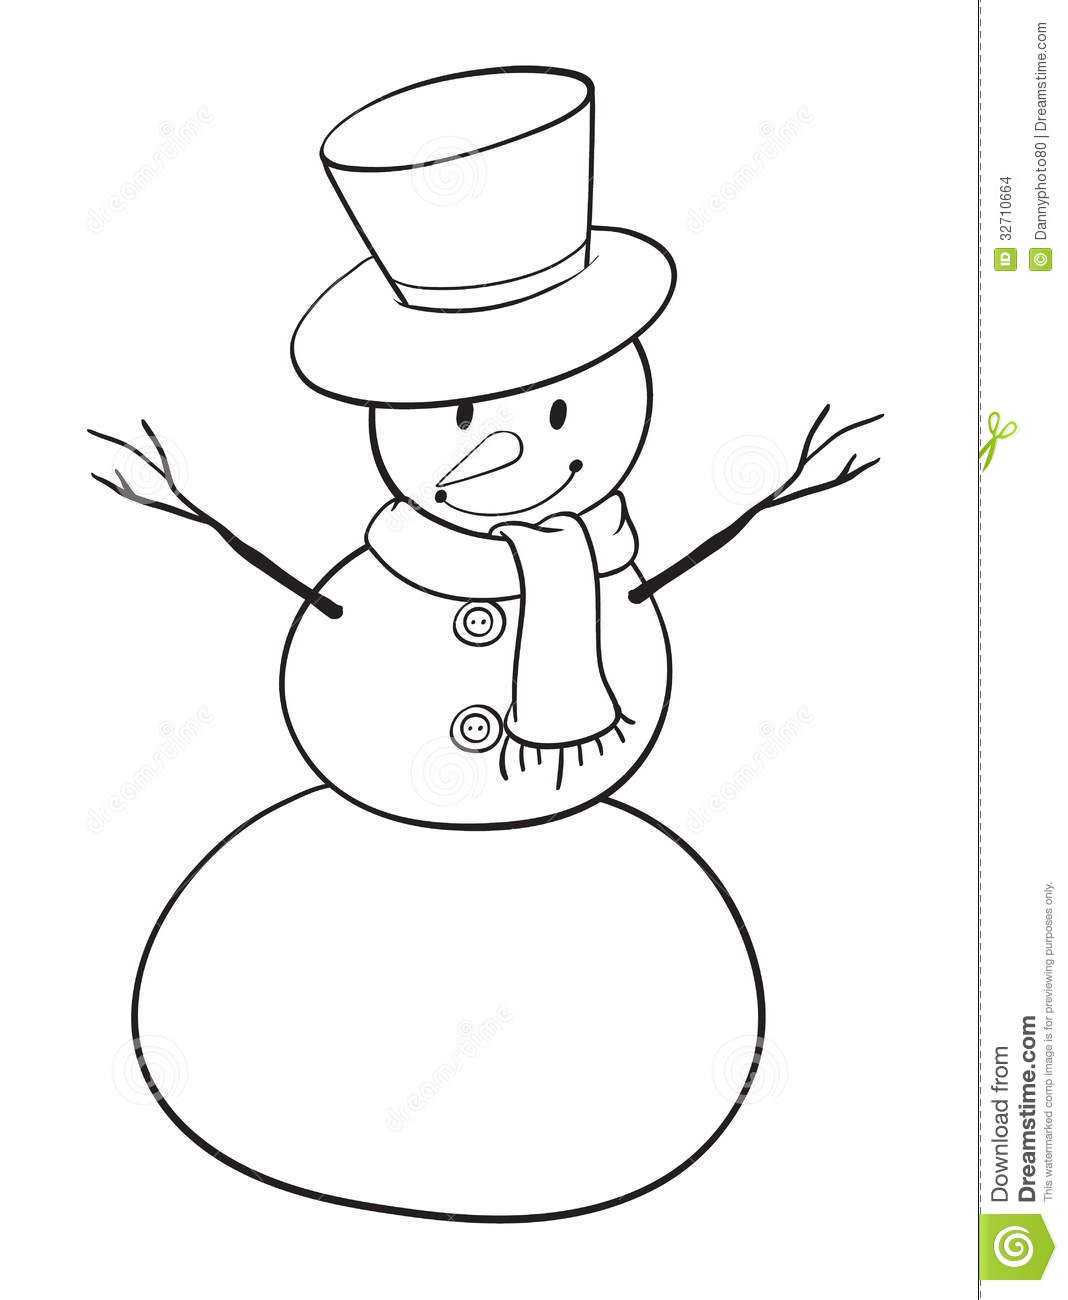 Mr Snowman On Christmas Touching A Snowflake Coloring Page: Snowman Sketch Stock Images